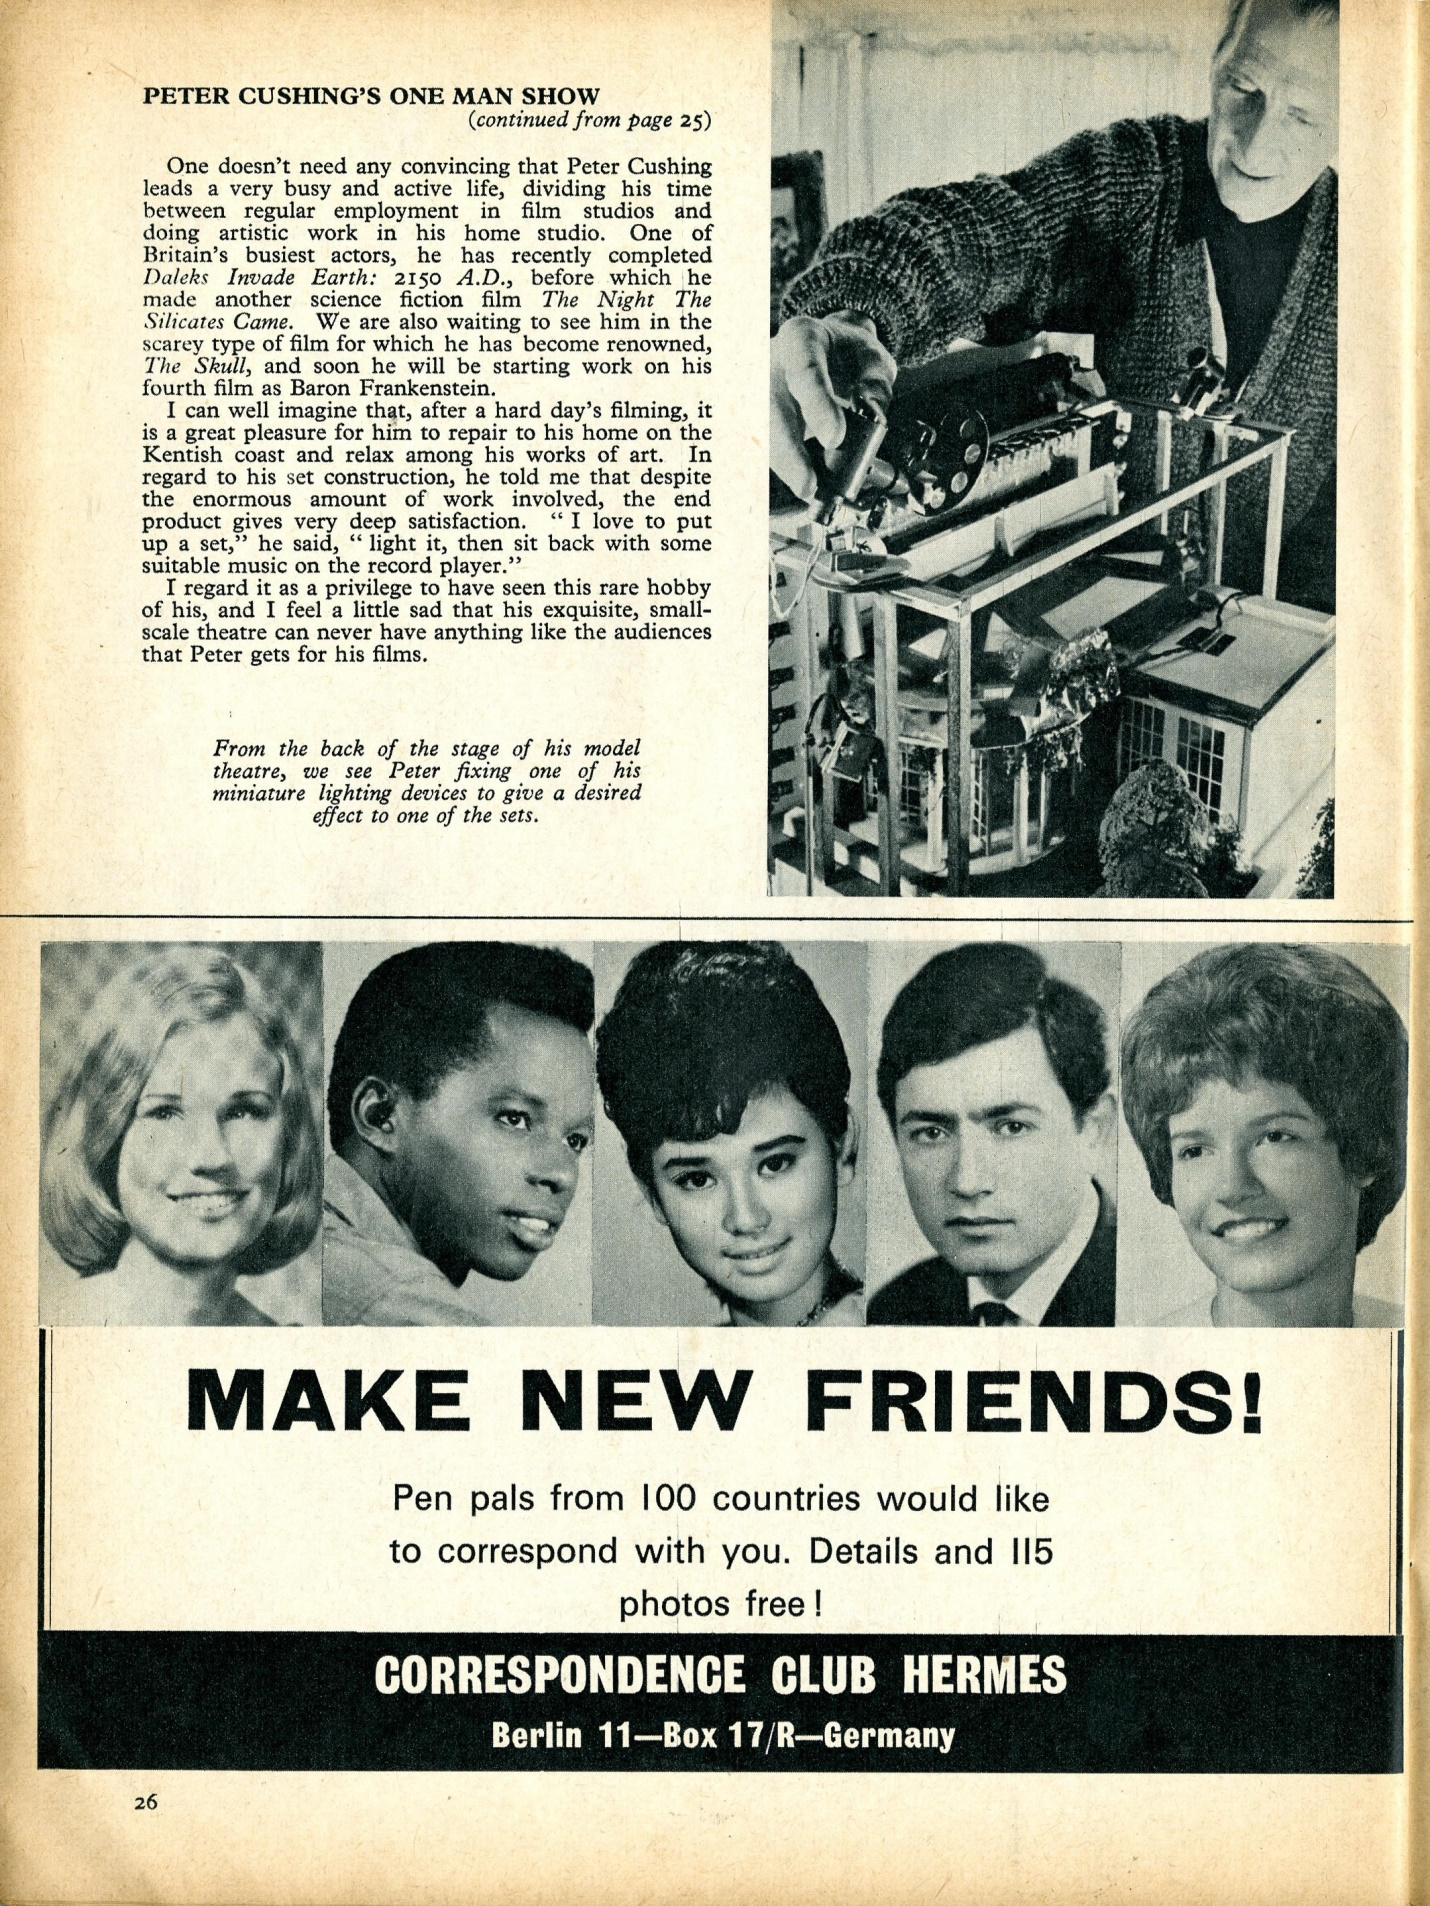 ABC Film Review, July 1966